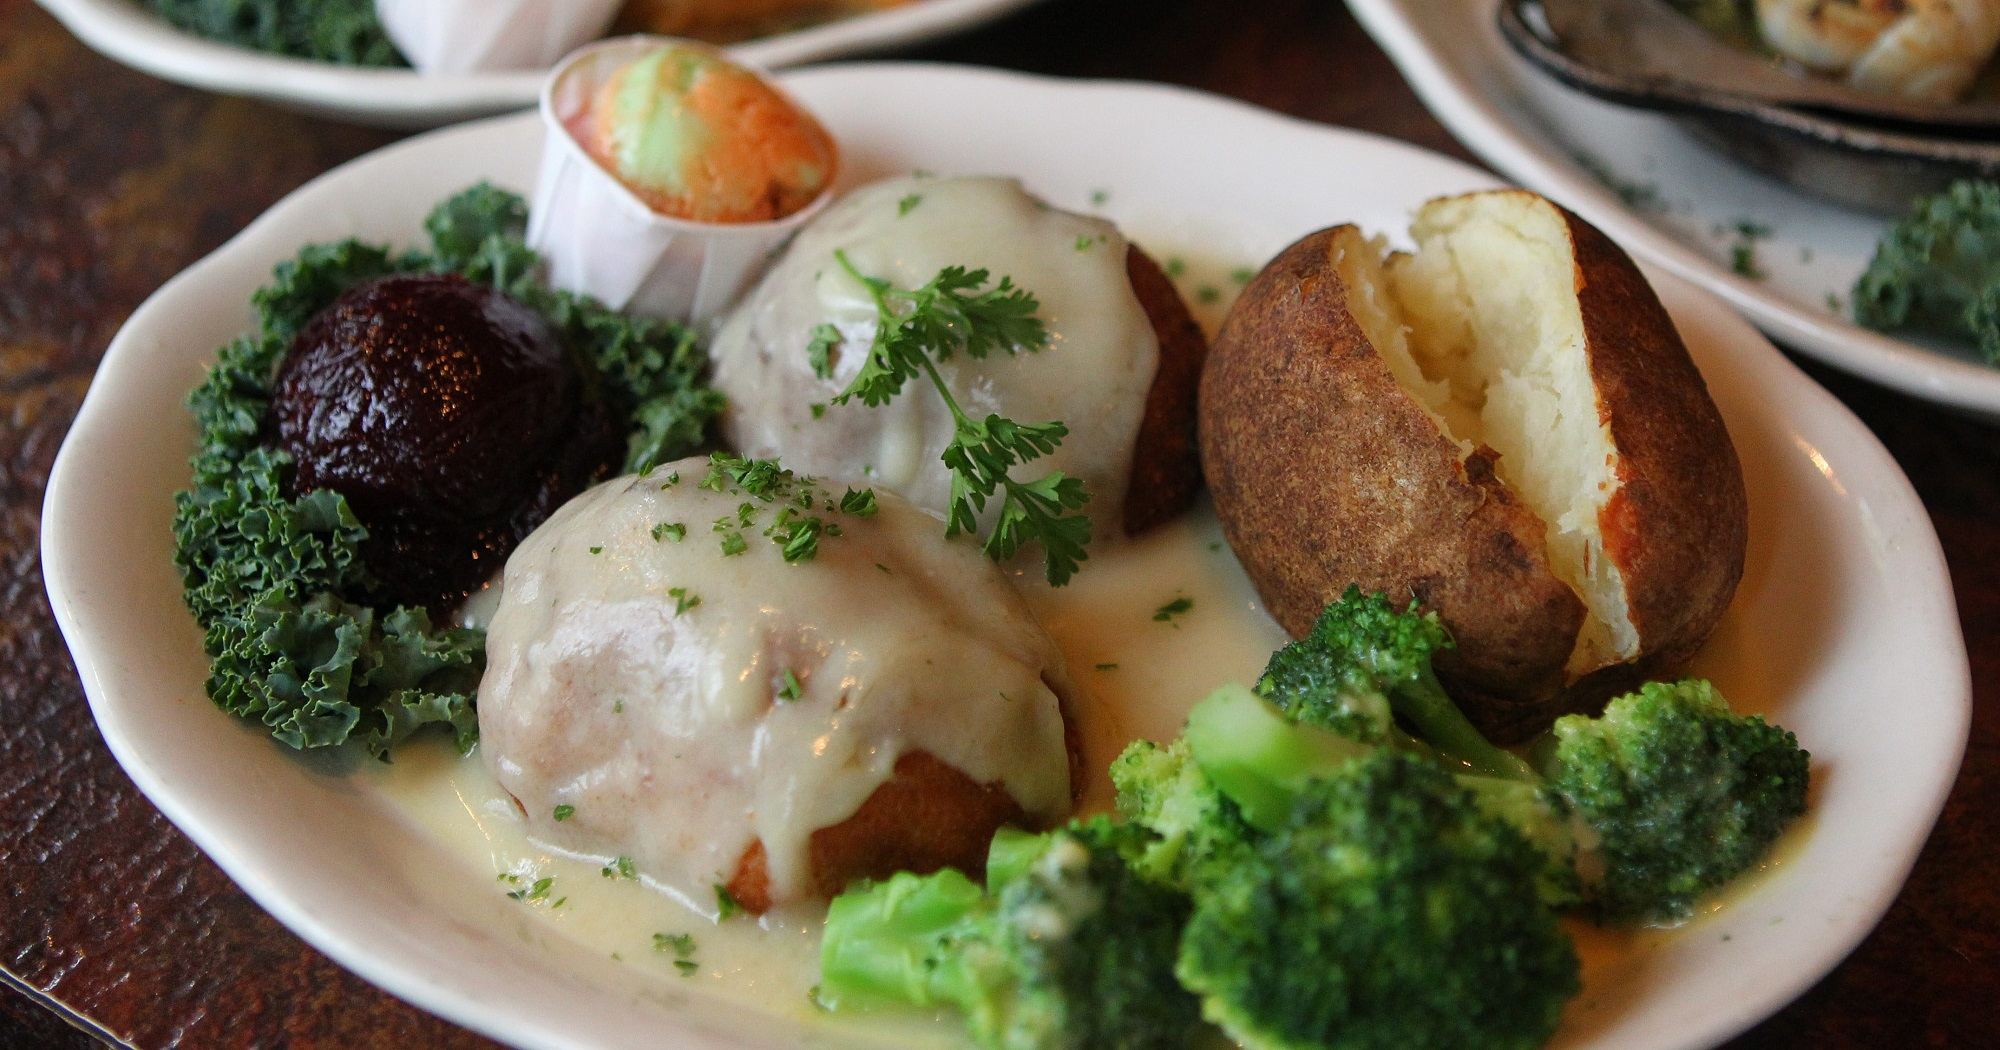 The timeless Turkey Jerome has been a go-to dish at the Mansard Inn for years. On Tuesday, new owners will take over the restaurant that's been in Orchard Park nearly 50 years. (Mark Mulville/News file photo)